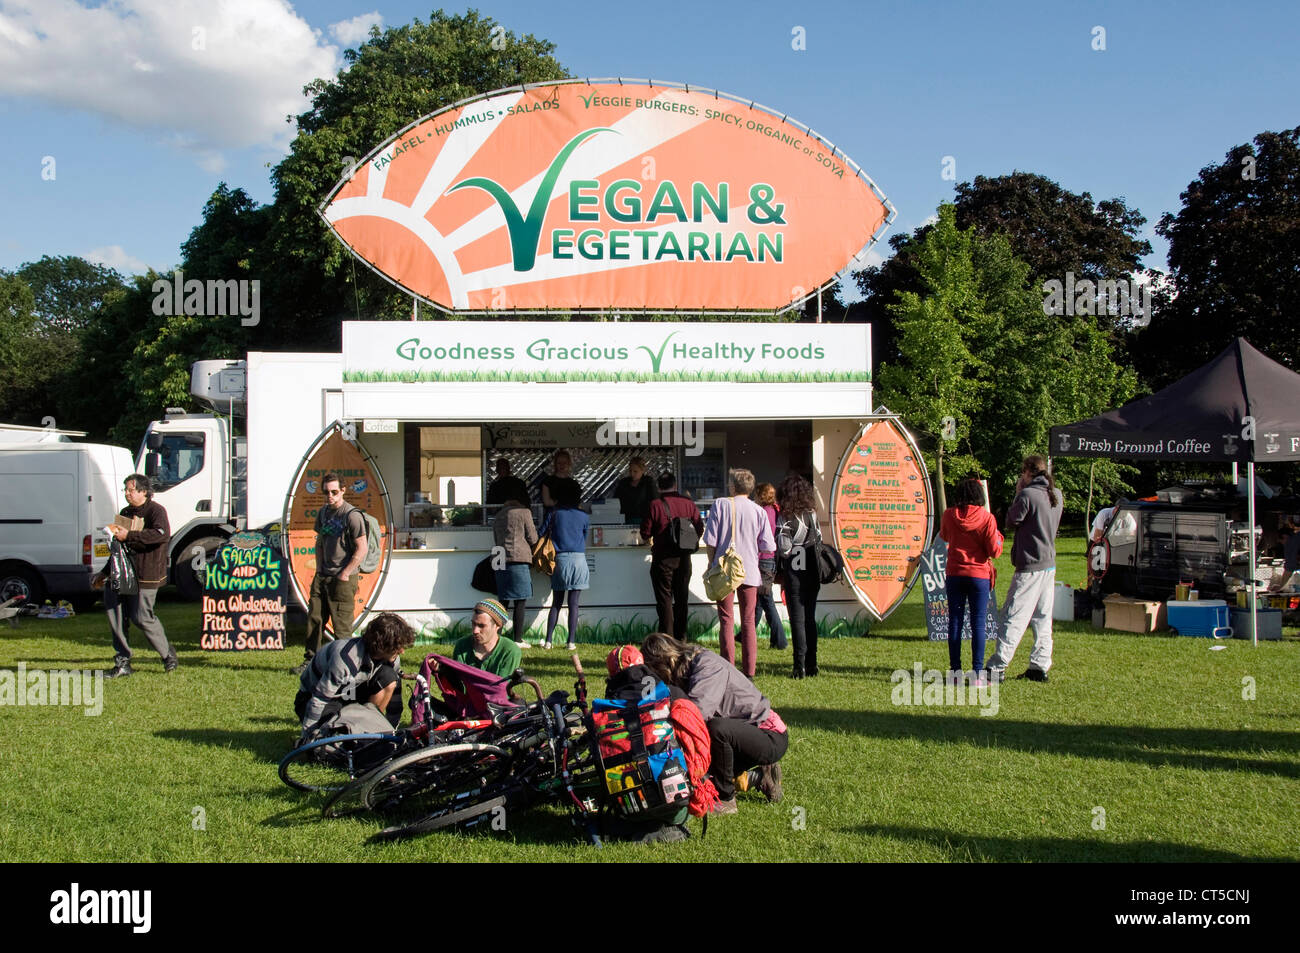 Vegan Vegetarian Food Stall With People And Bikes Around